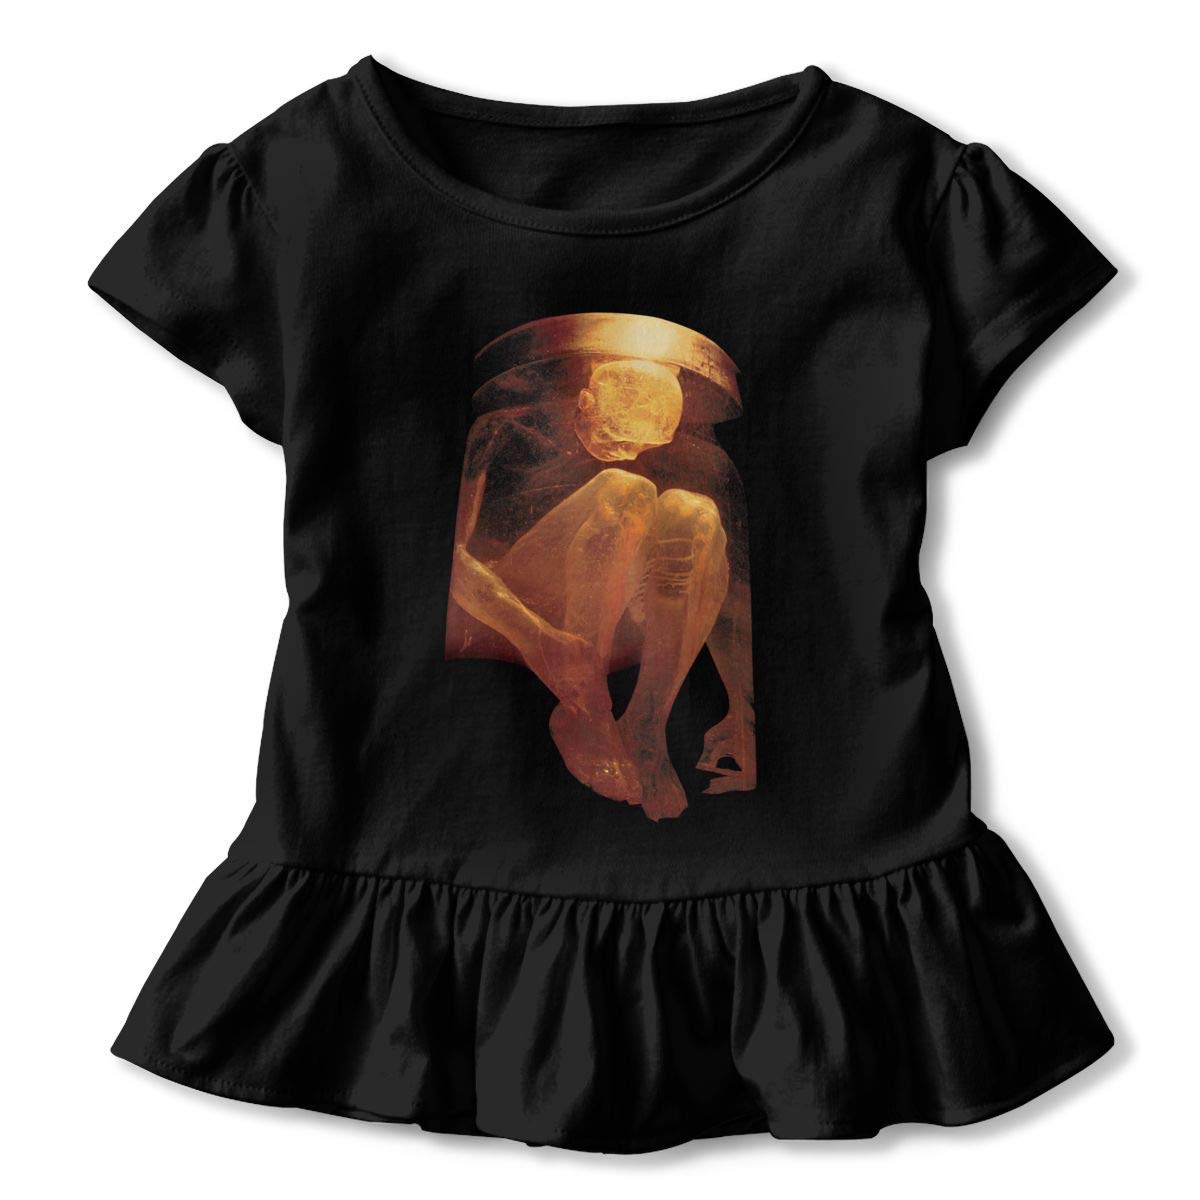 Kid T Shirt Alice in Chains 3D Tee Baseball Ruffle Short Sleeve Cotton Shirts Top for Girls Kids